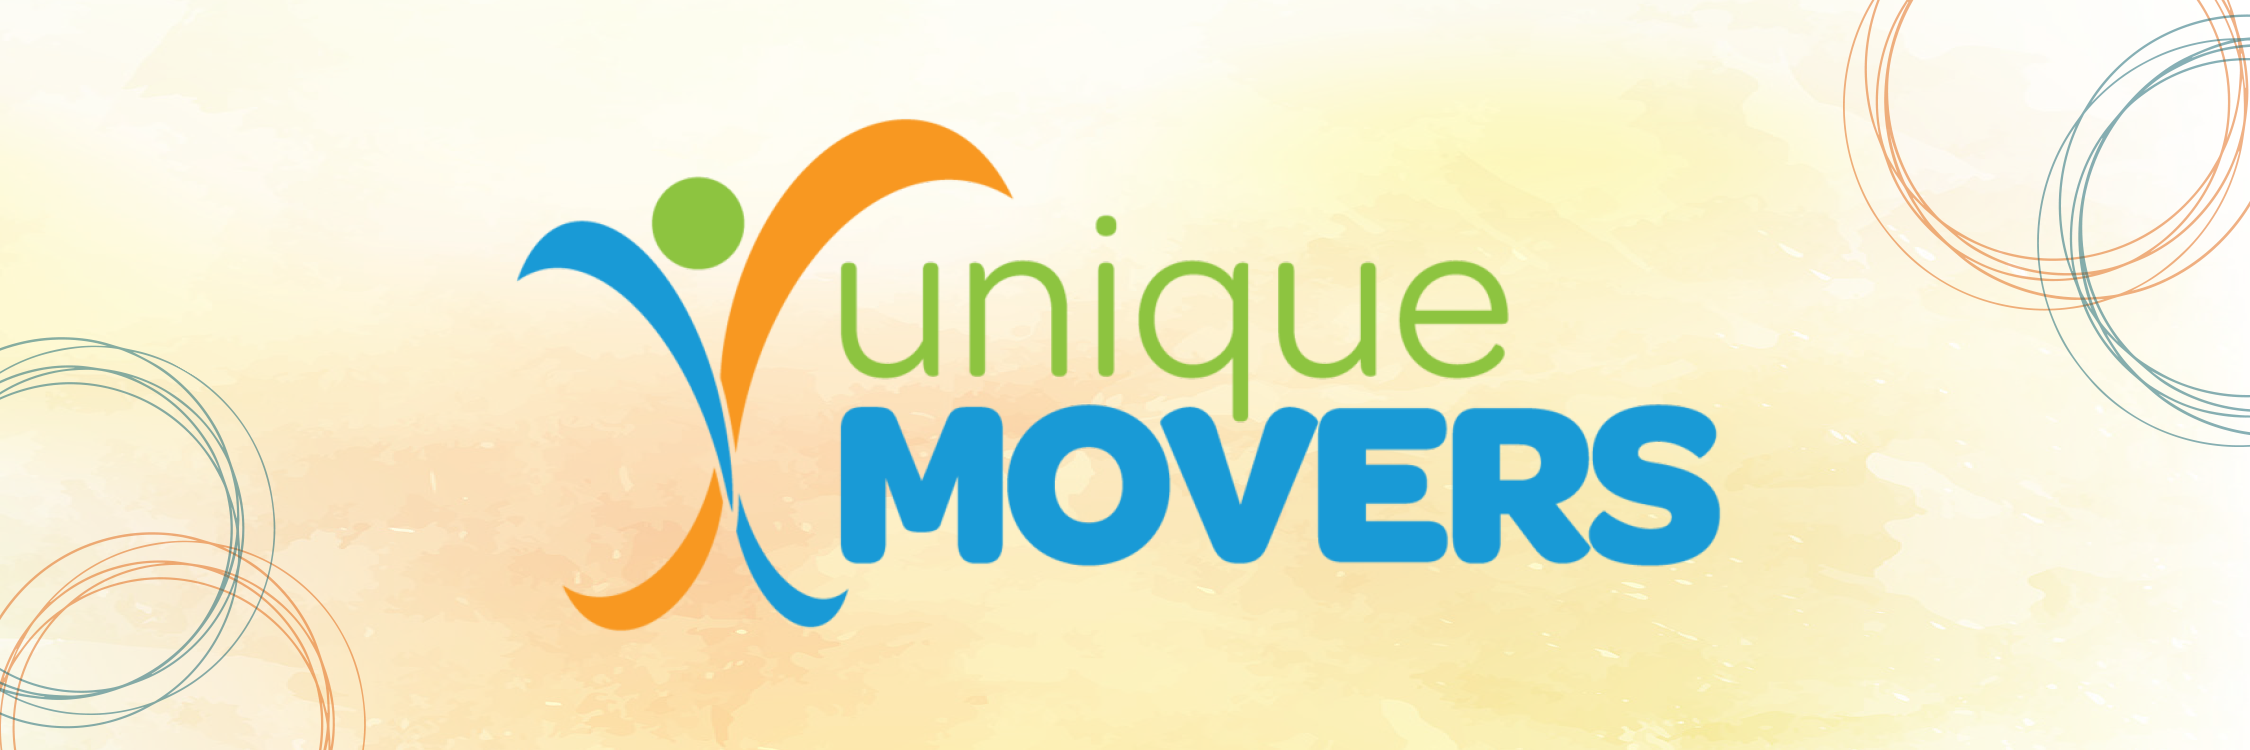 Unique Movers Headline